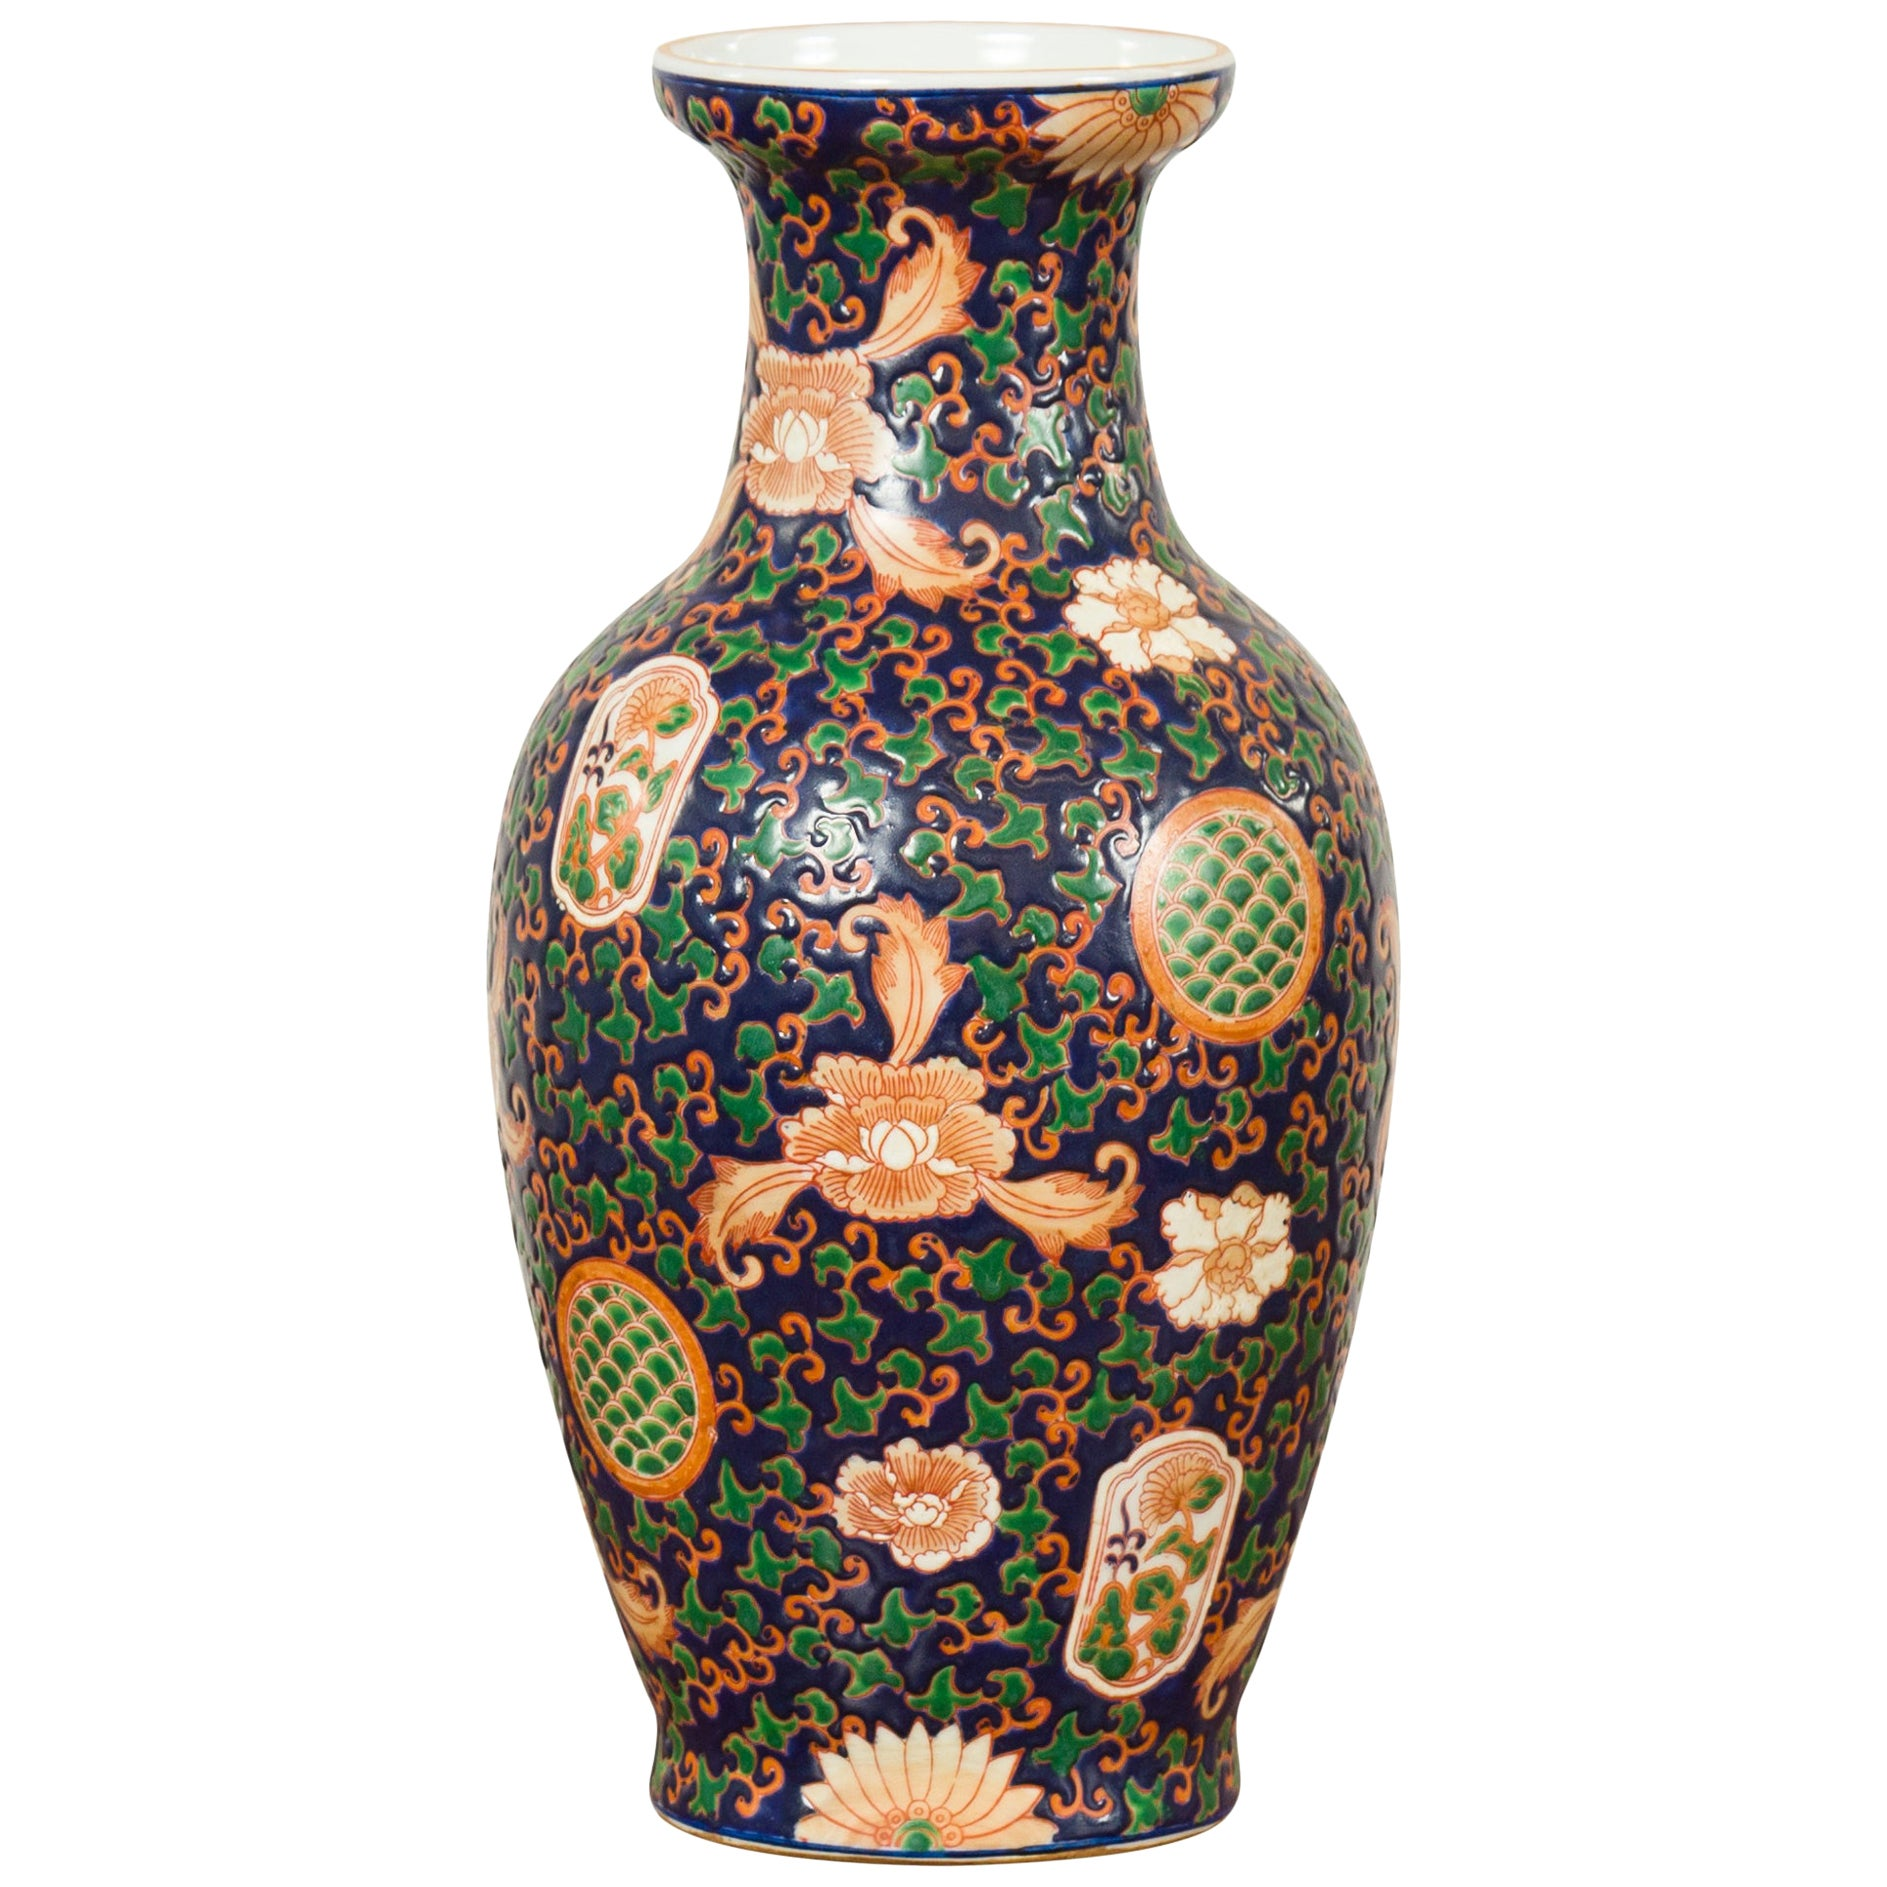 Chinese Contemporary Hand Painted Vase with Cobalt Blue Ground and Floral Decor